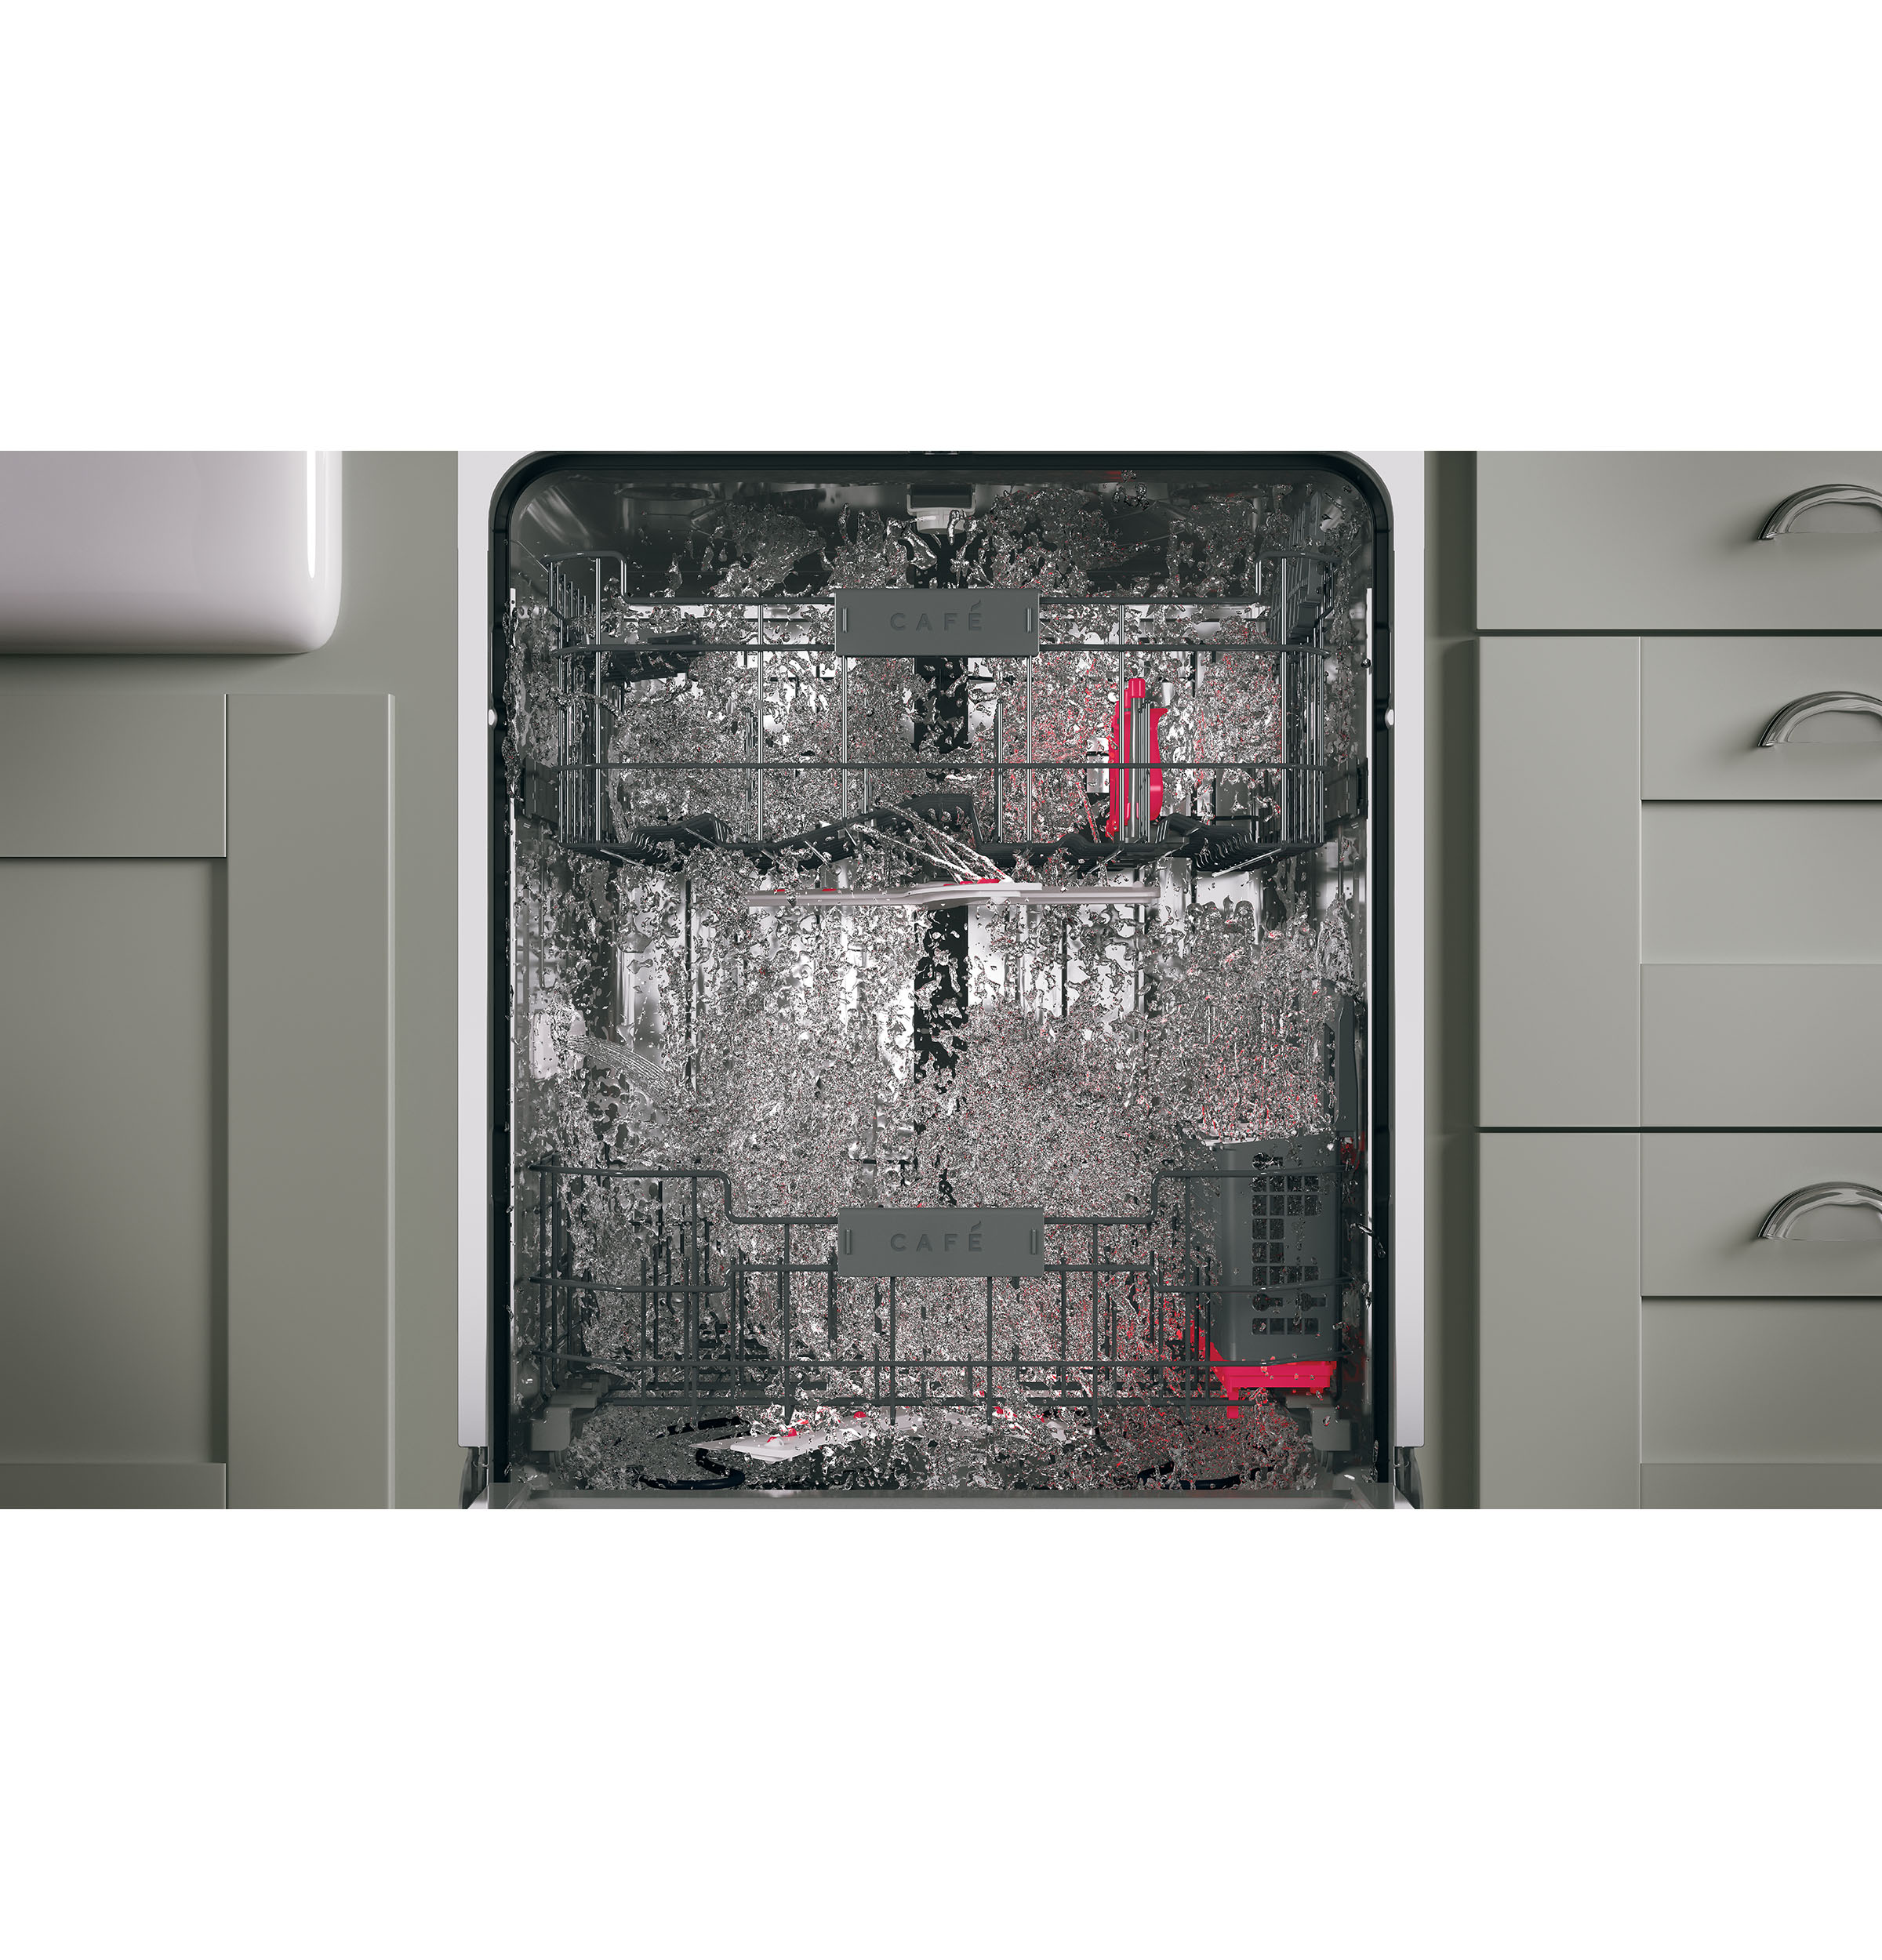 Model: CDT866P2MS1   GE Café™ Series Stainless Interior Built-In Dishwasher with Hidden Controls